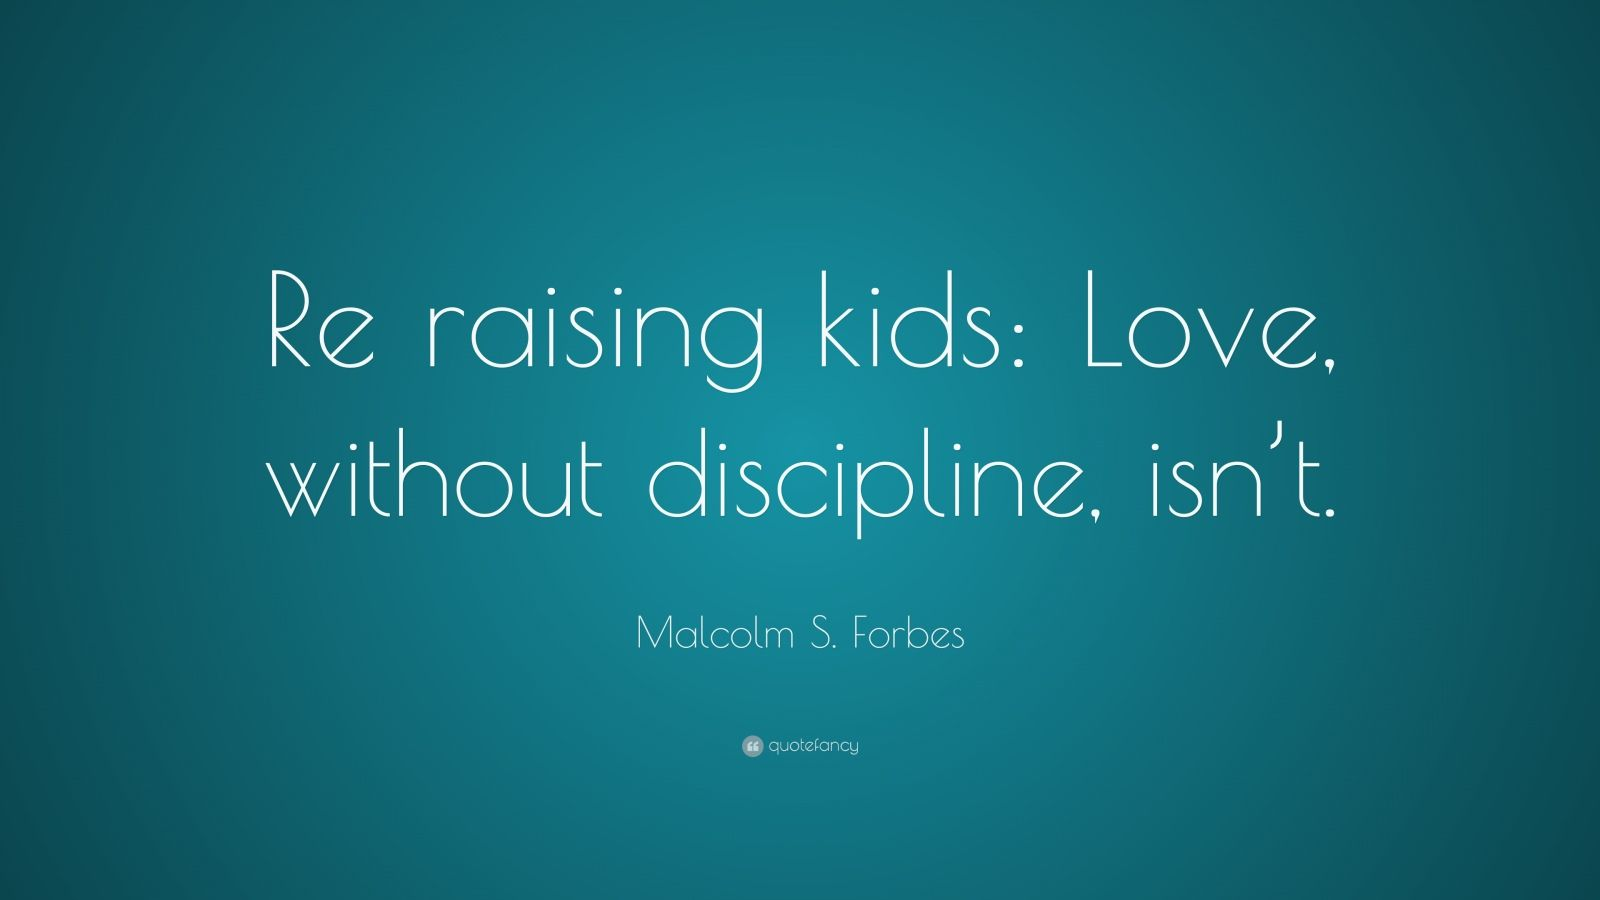 """Malcolm S. Forbes Quote: """"Re raising kids: Love, without discipline, isn't."""""""